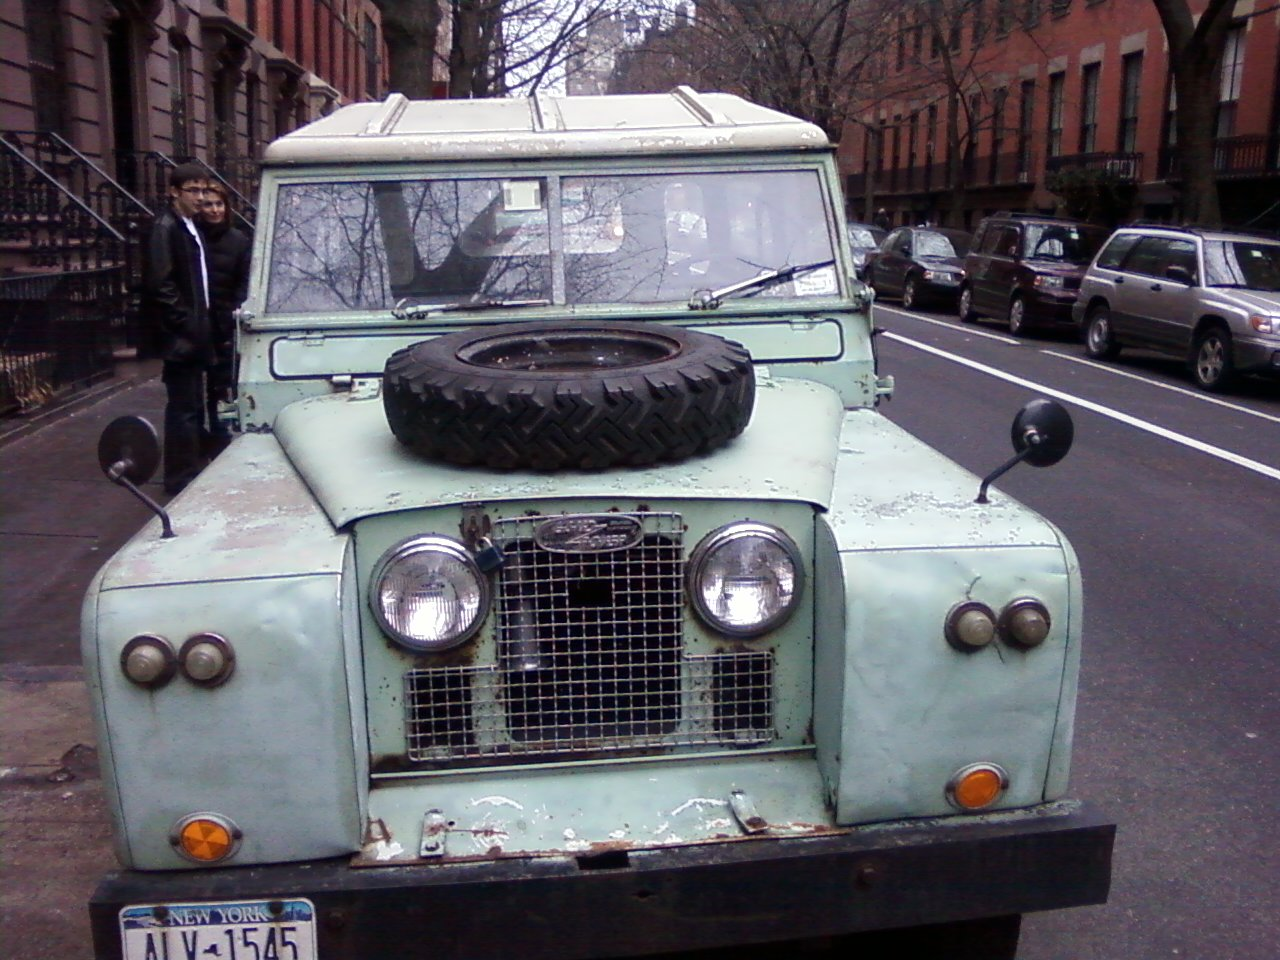 A Land Rover Series 2 in New York